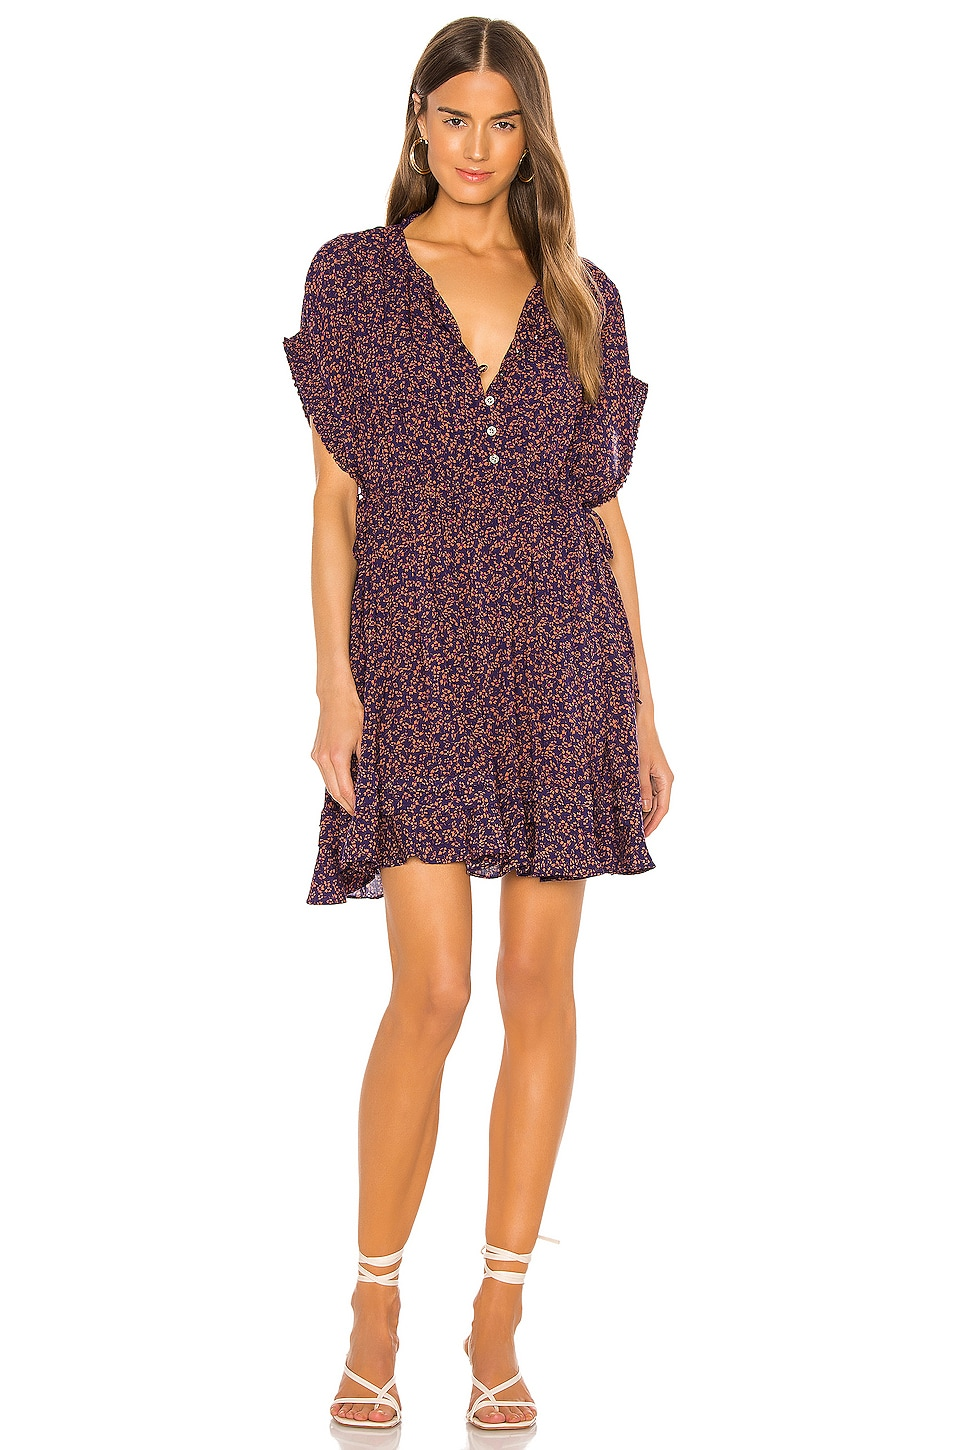 One Fine Day Mini Dress             Free People                                                                                                                                         Sale price:                                                                       CA$ 101.11                                                                  Previous price:                                                                       CA$ 179.74 2